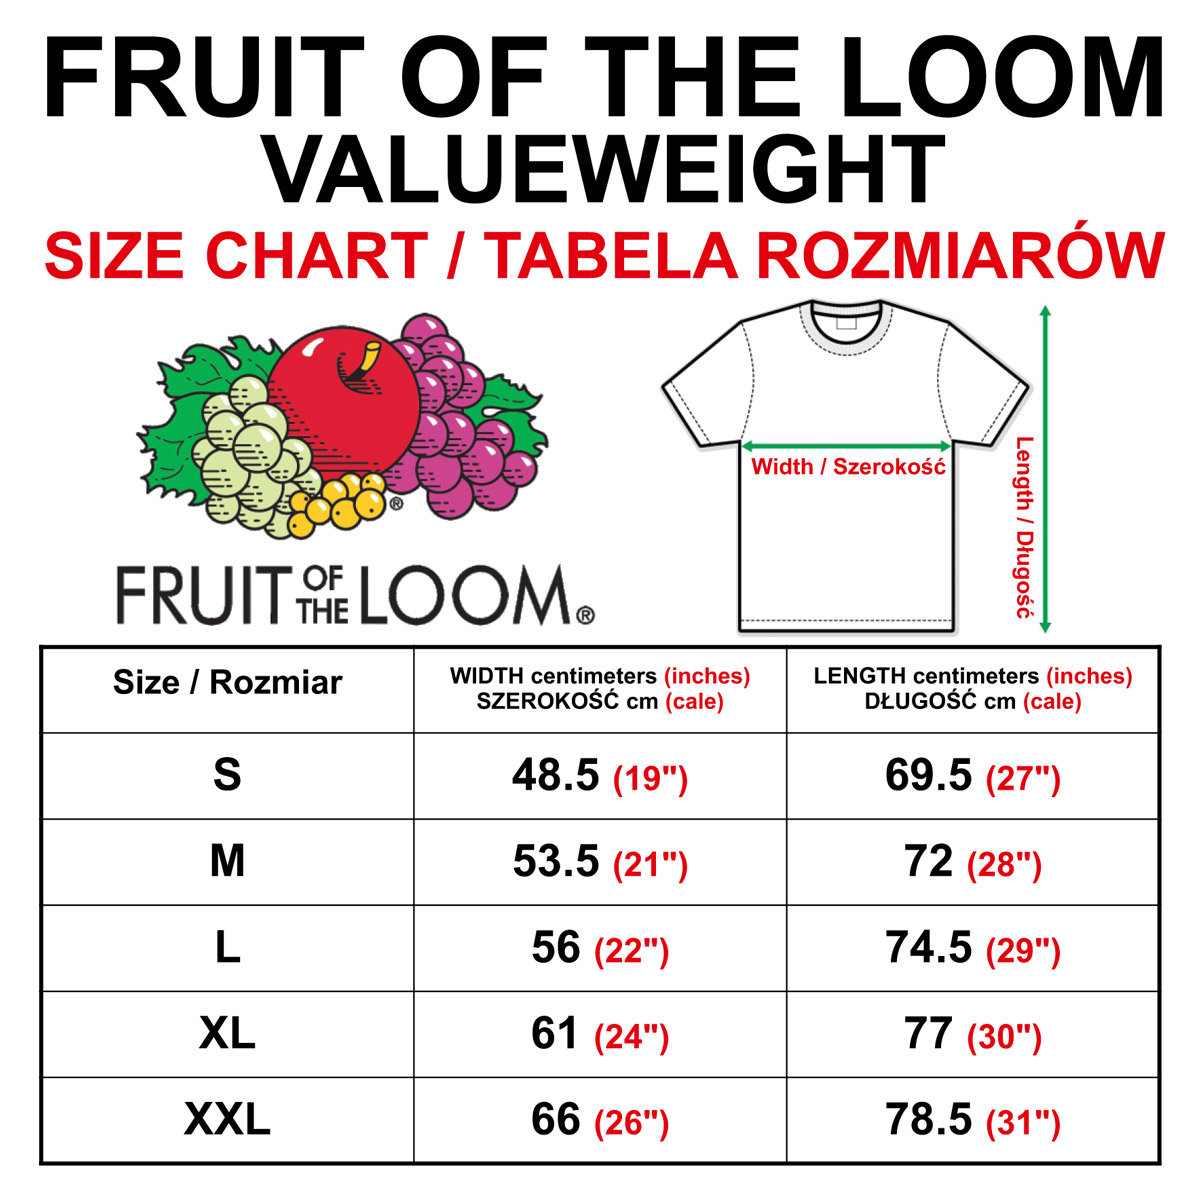 Bildergebnis für fruit of the Loom valueweight size chart